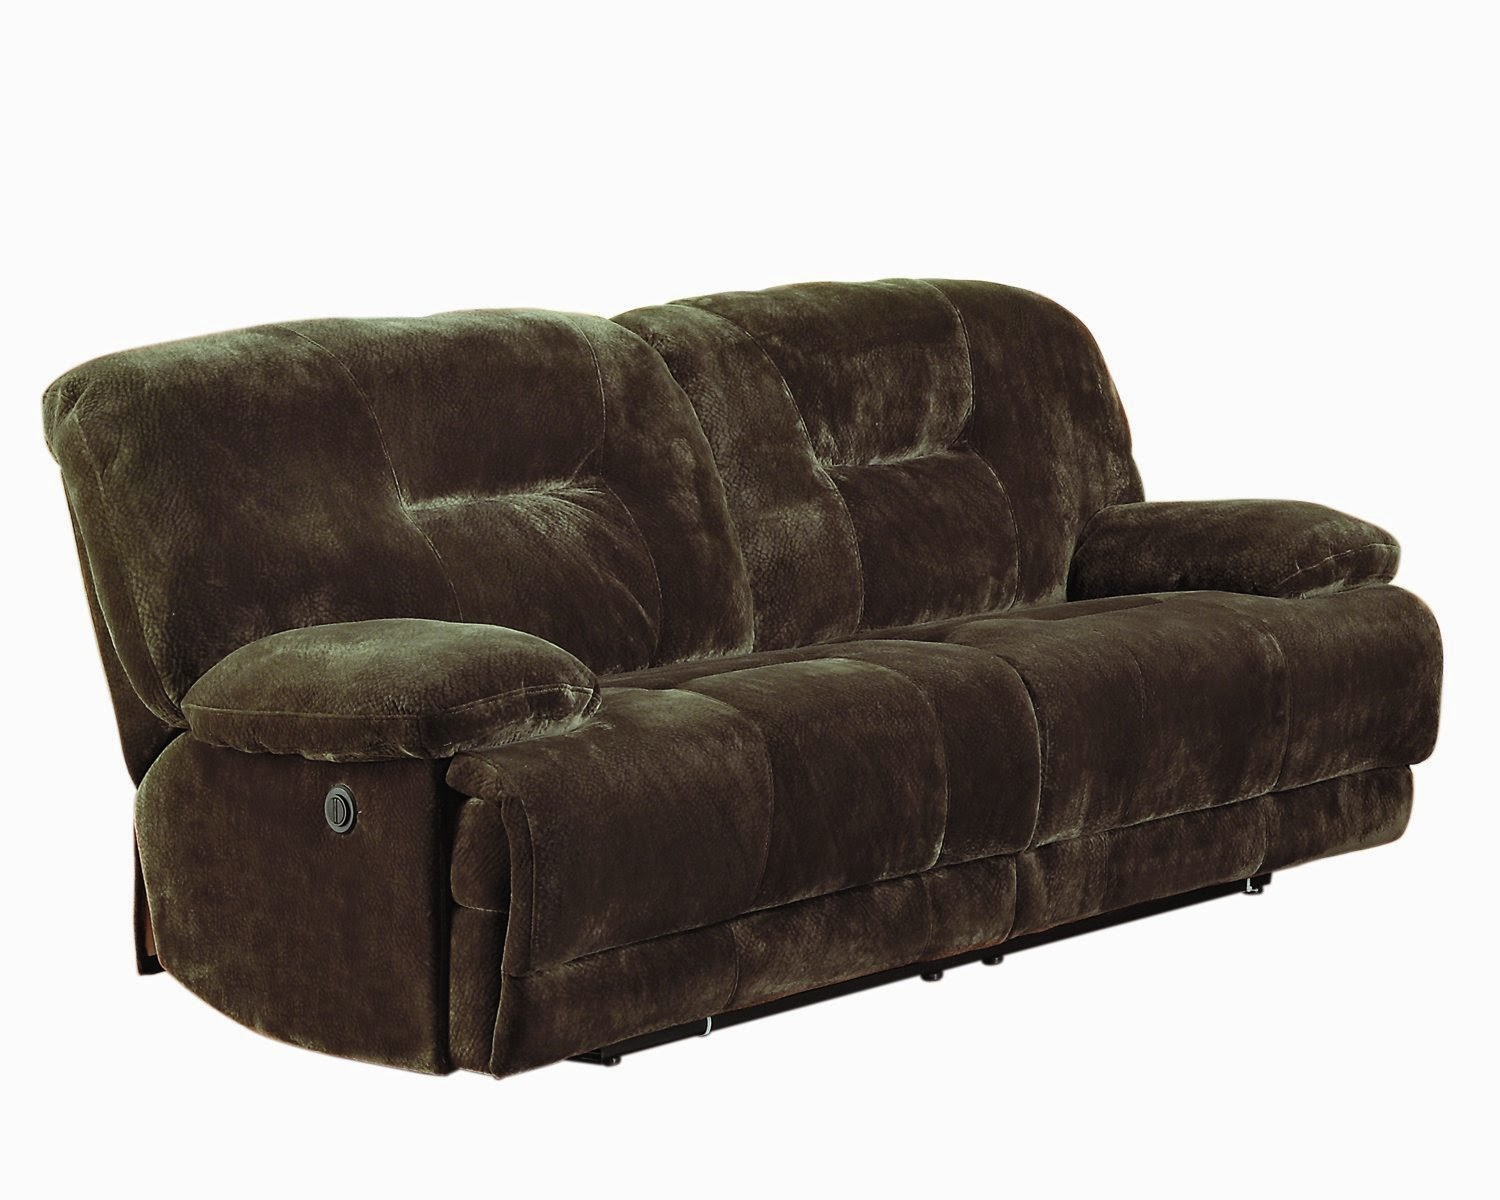 The Best Reclining Sofas Ratings Reviews: 2 Seater Leather ...